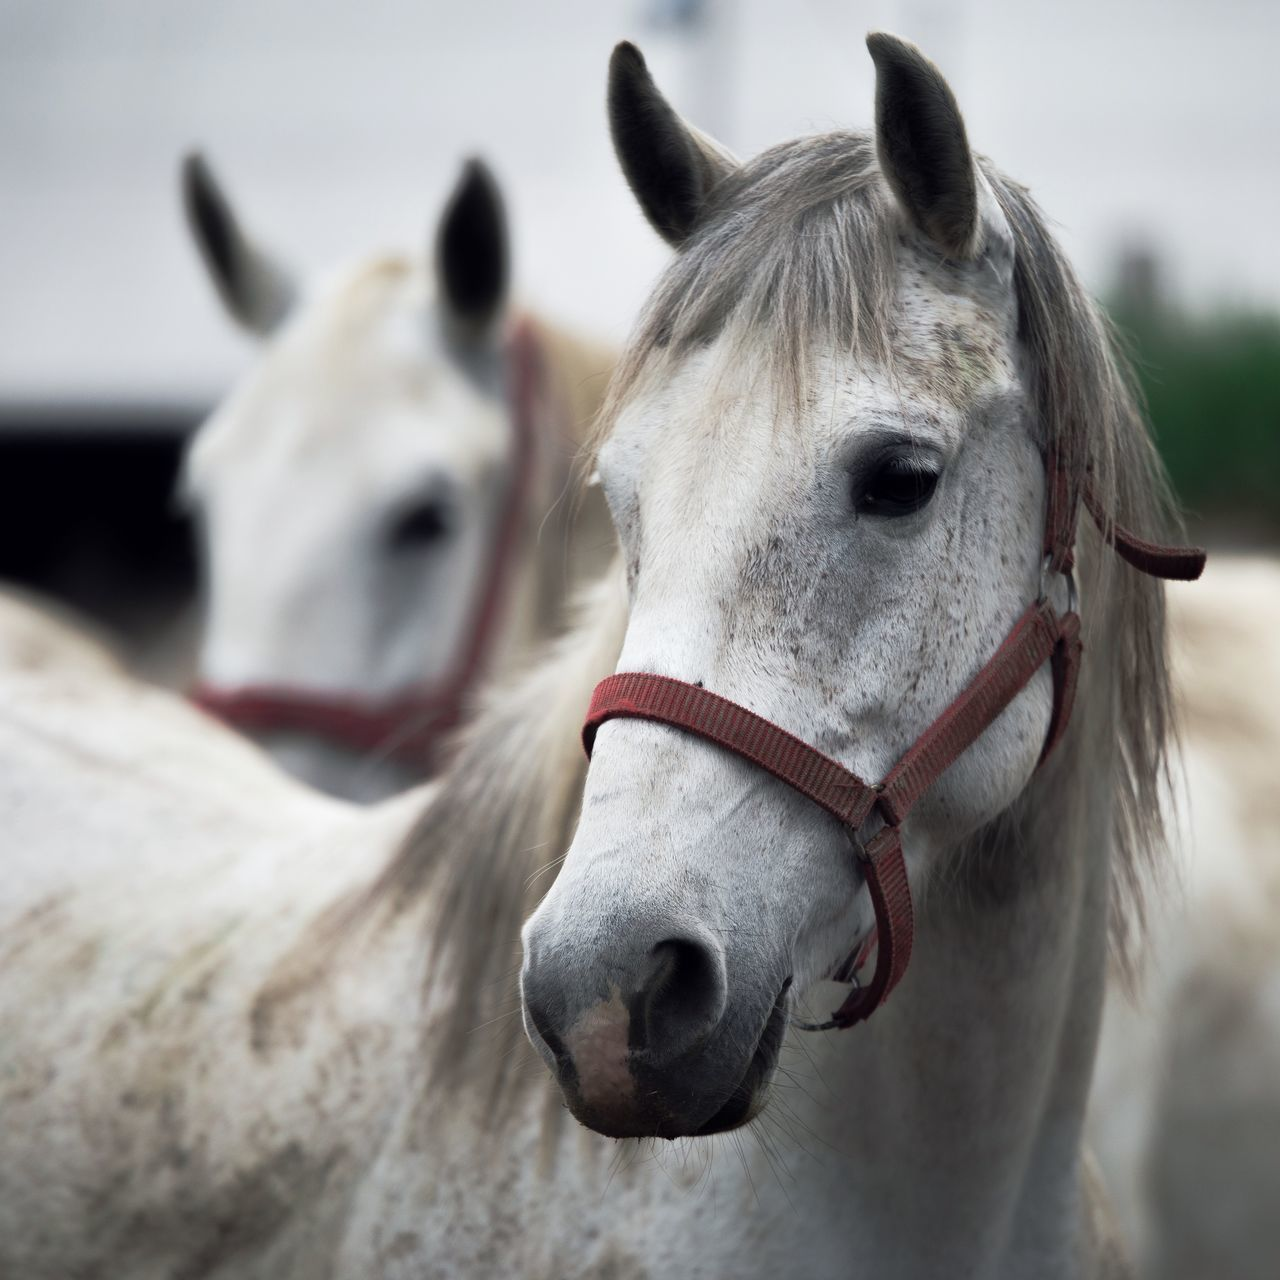 Animal Themes Close-up Day Domestic Animals Horse Mammal Nature No People One Animal Outdoors